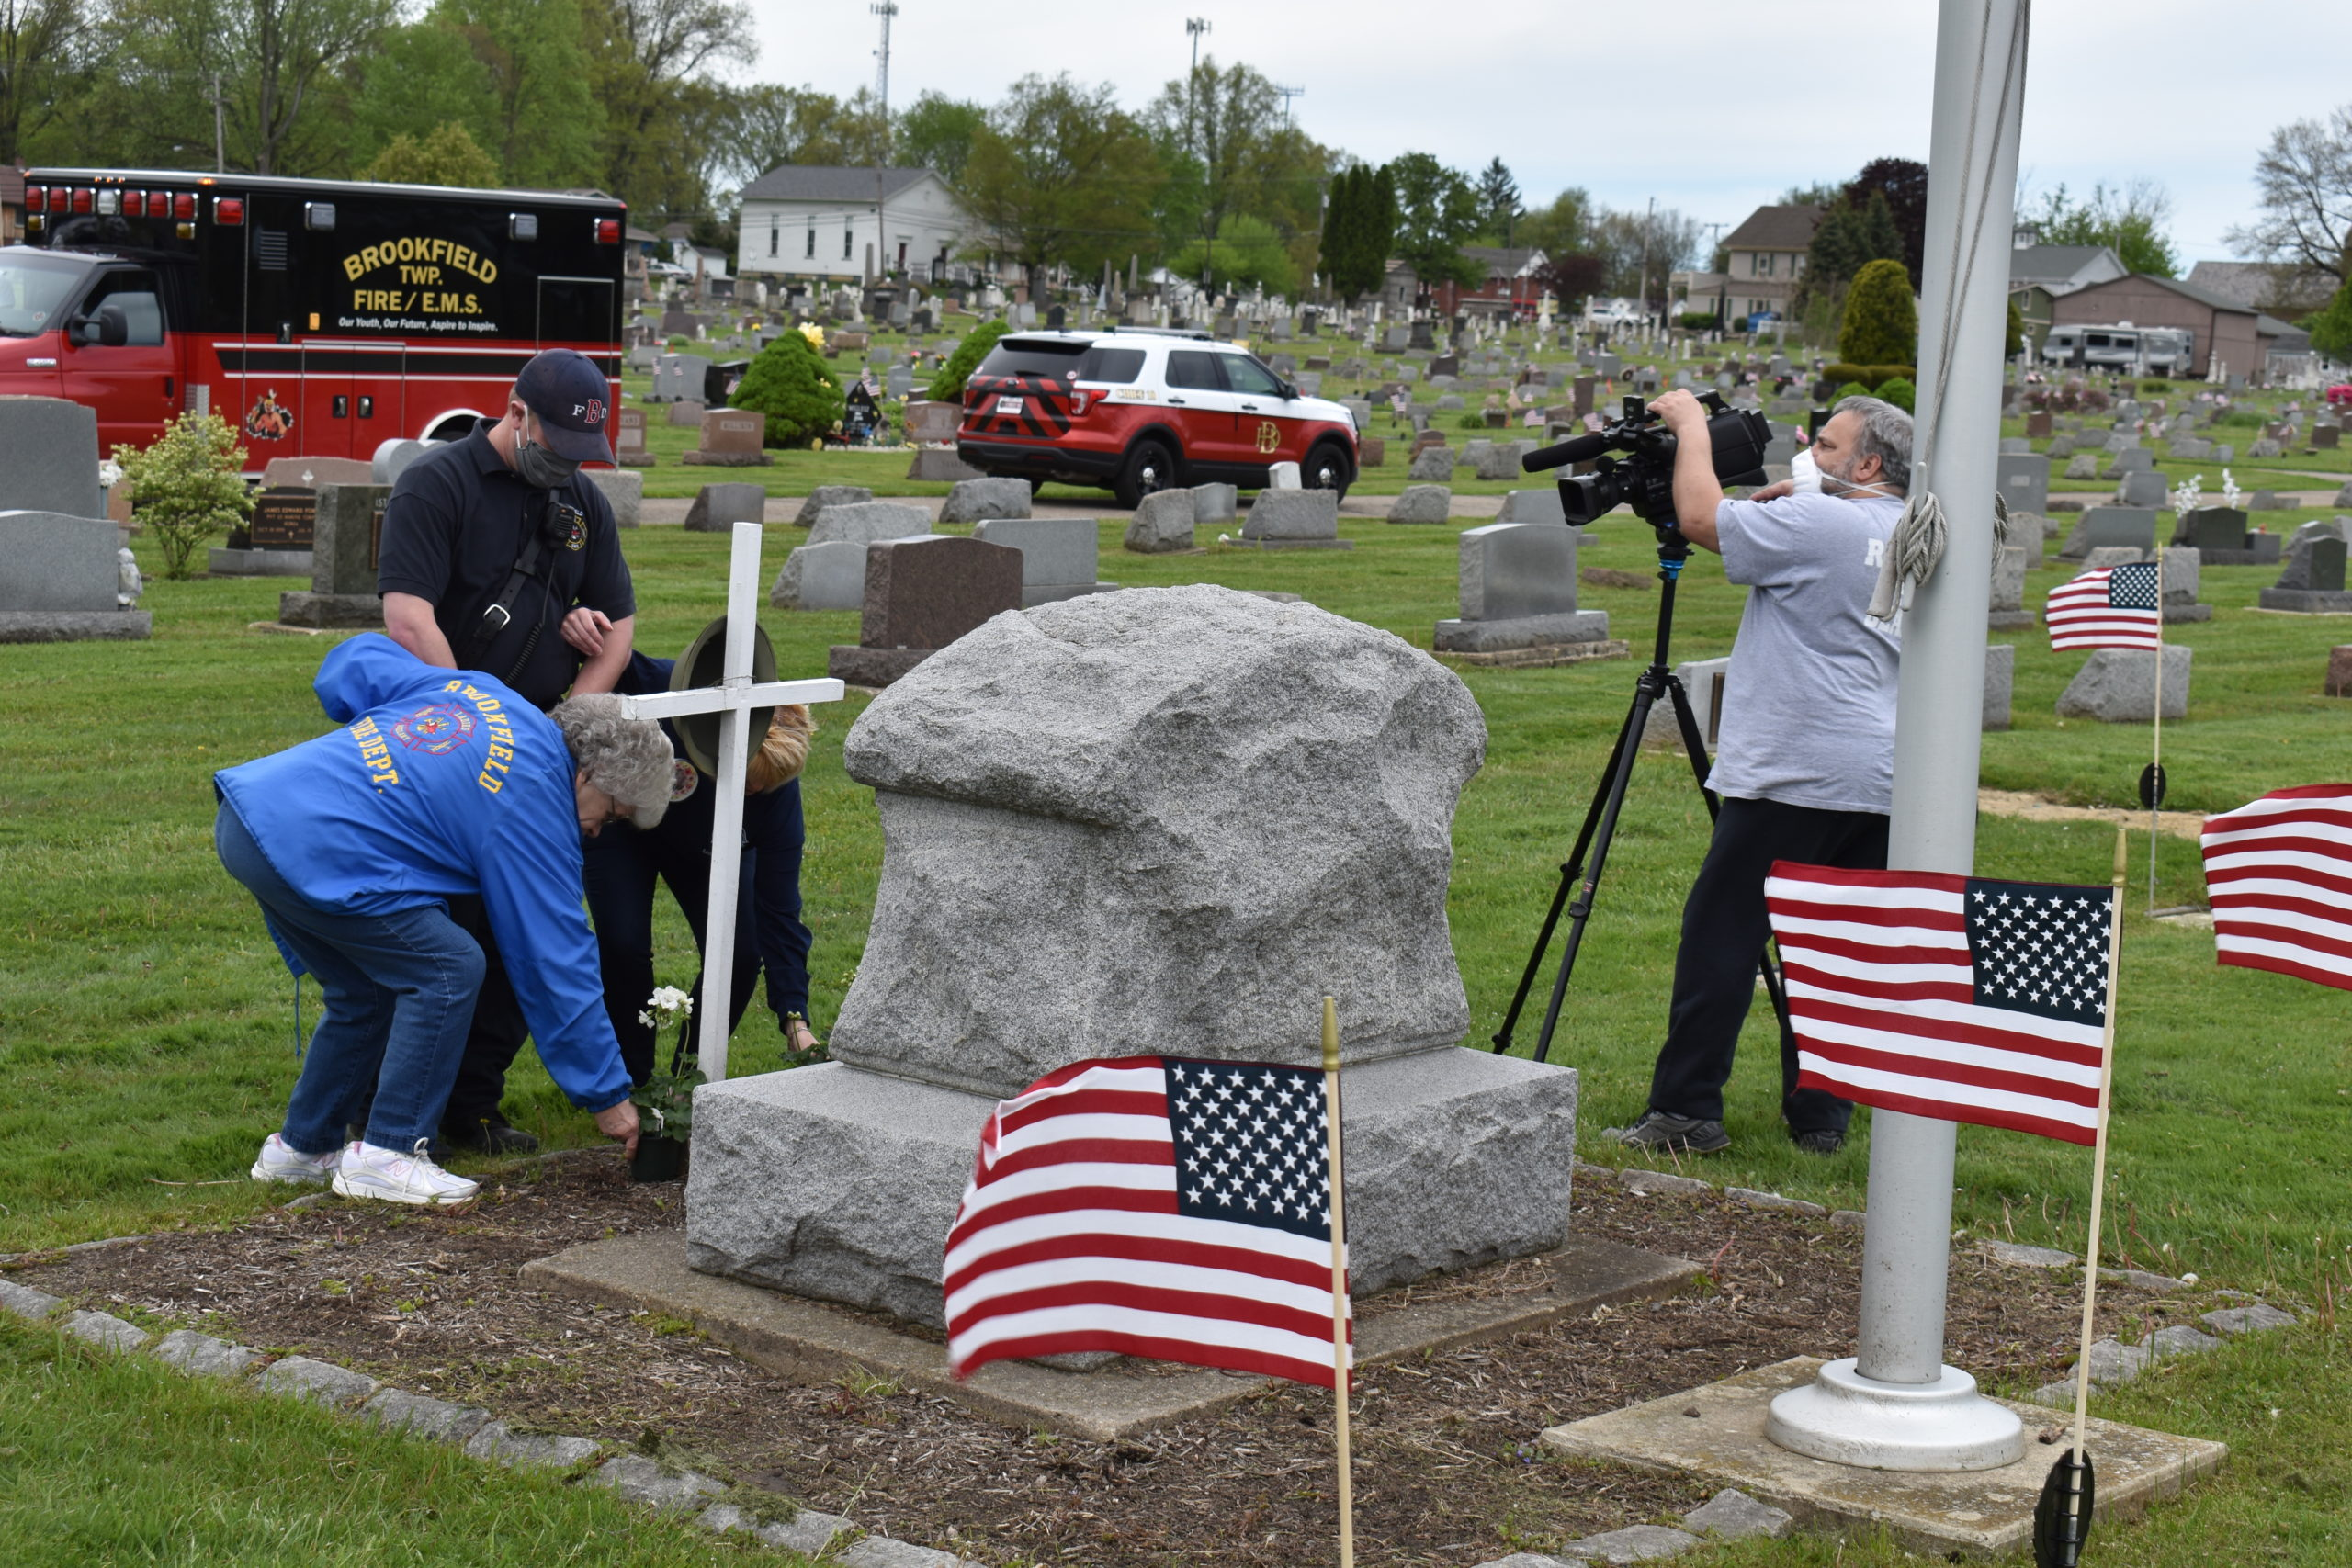 Pat Barnhart and Debbie Elliott, escorted by Russ Vereshack, place flowers on the veterans' marker in Brookfield Township Cemetery. Bob Vaia records the act for a video to be posted on the Brookfield Township Facebook page.